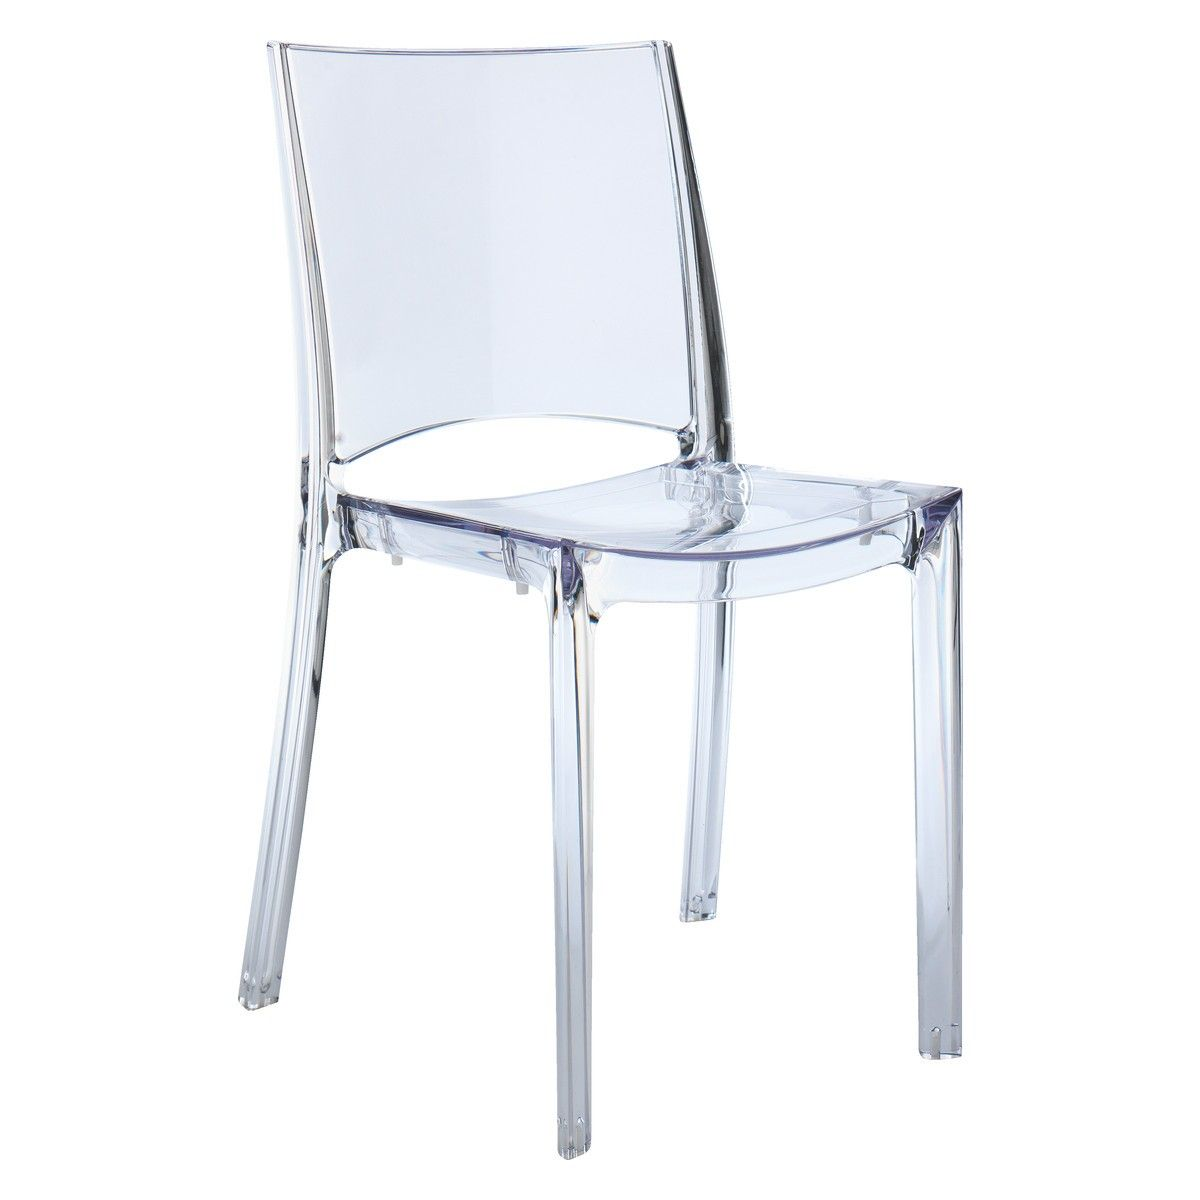 Magnificent Clear Plastic Chair About Remodel Small Home Decoration Ideas With Additional 93